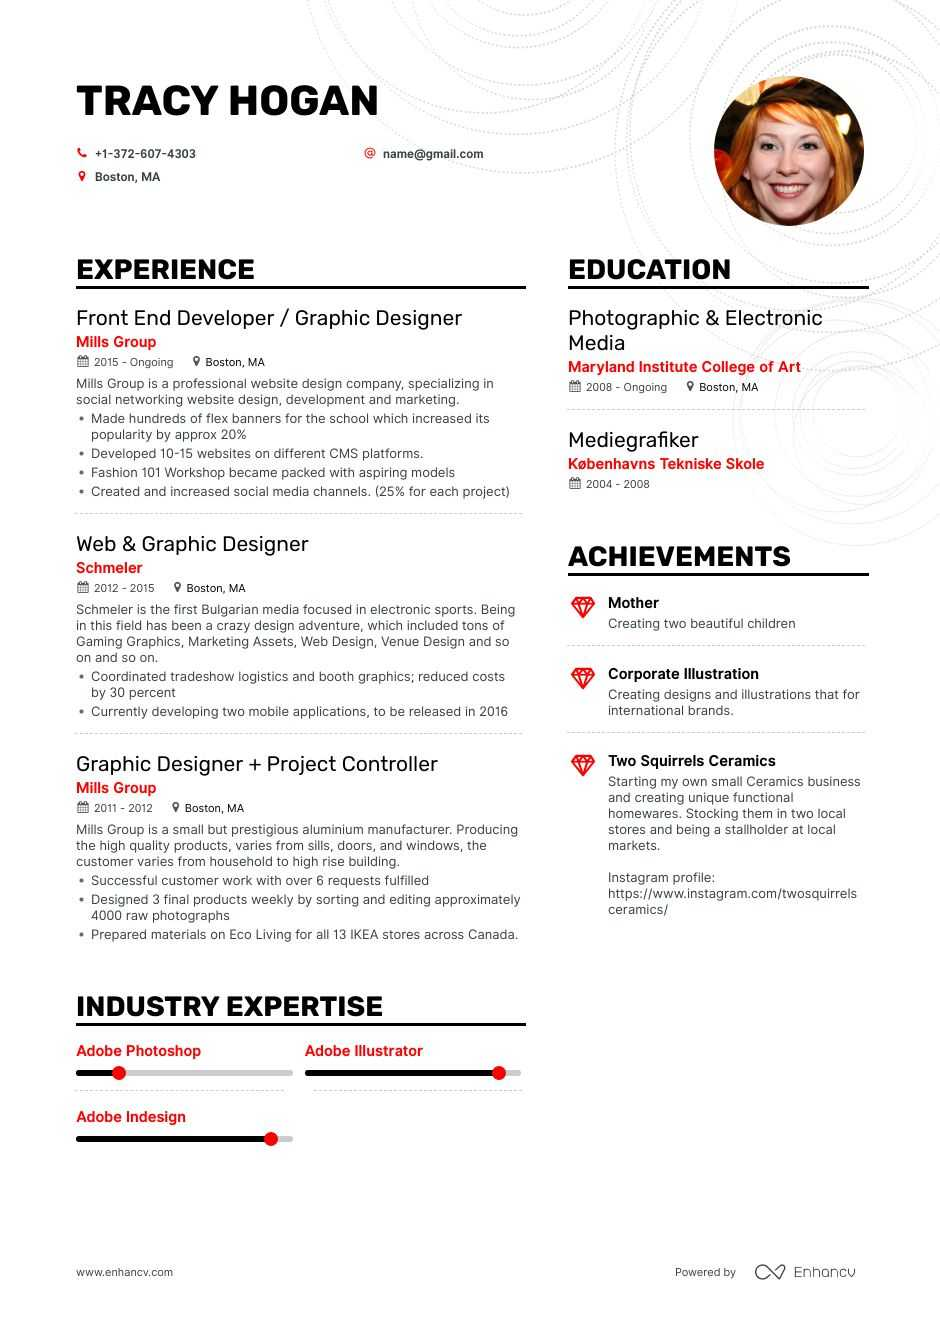 freelance graphic designer resume examples pro tips featured enhancv design description Resume Graphic Design Description For Resume